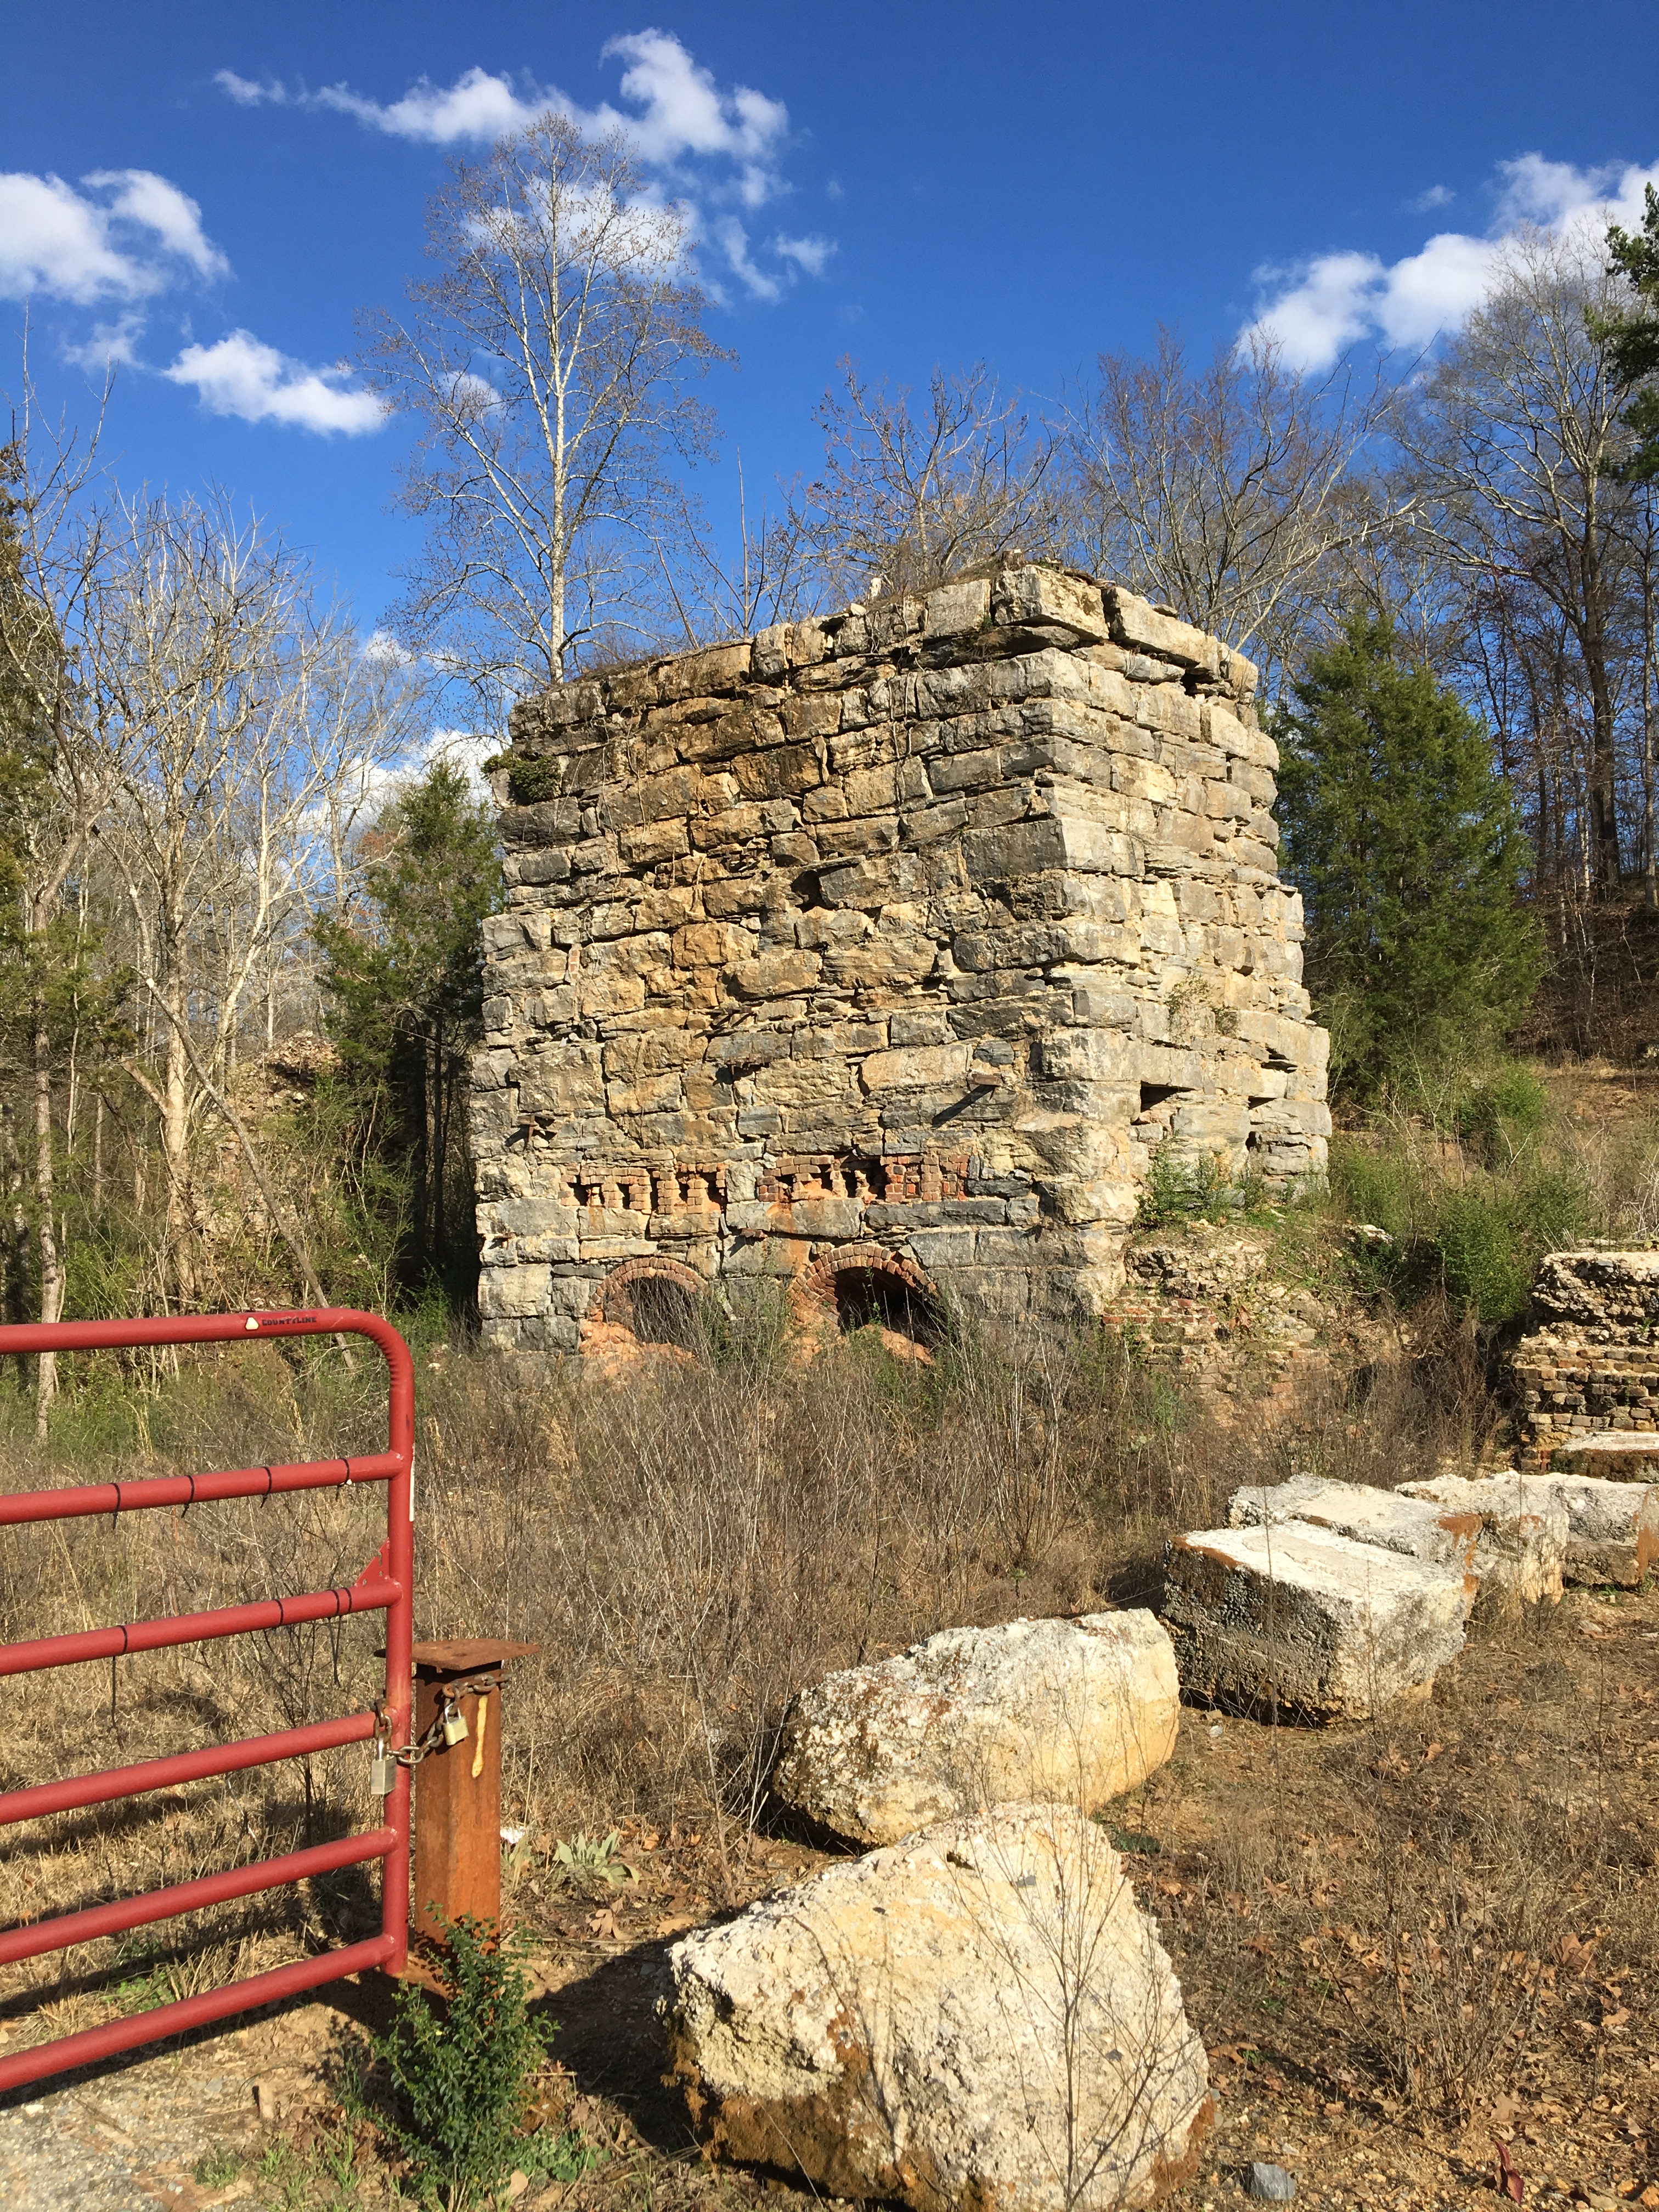 Ruins of a kiln from the Howard Hydraulic Cement Company in the former town of Cement, GA, 2017.